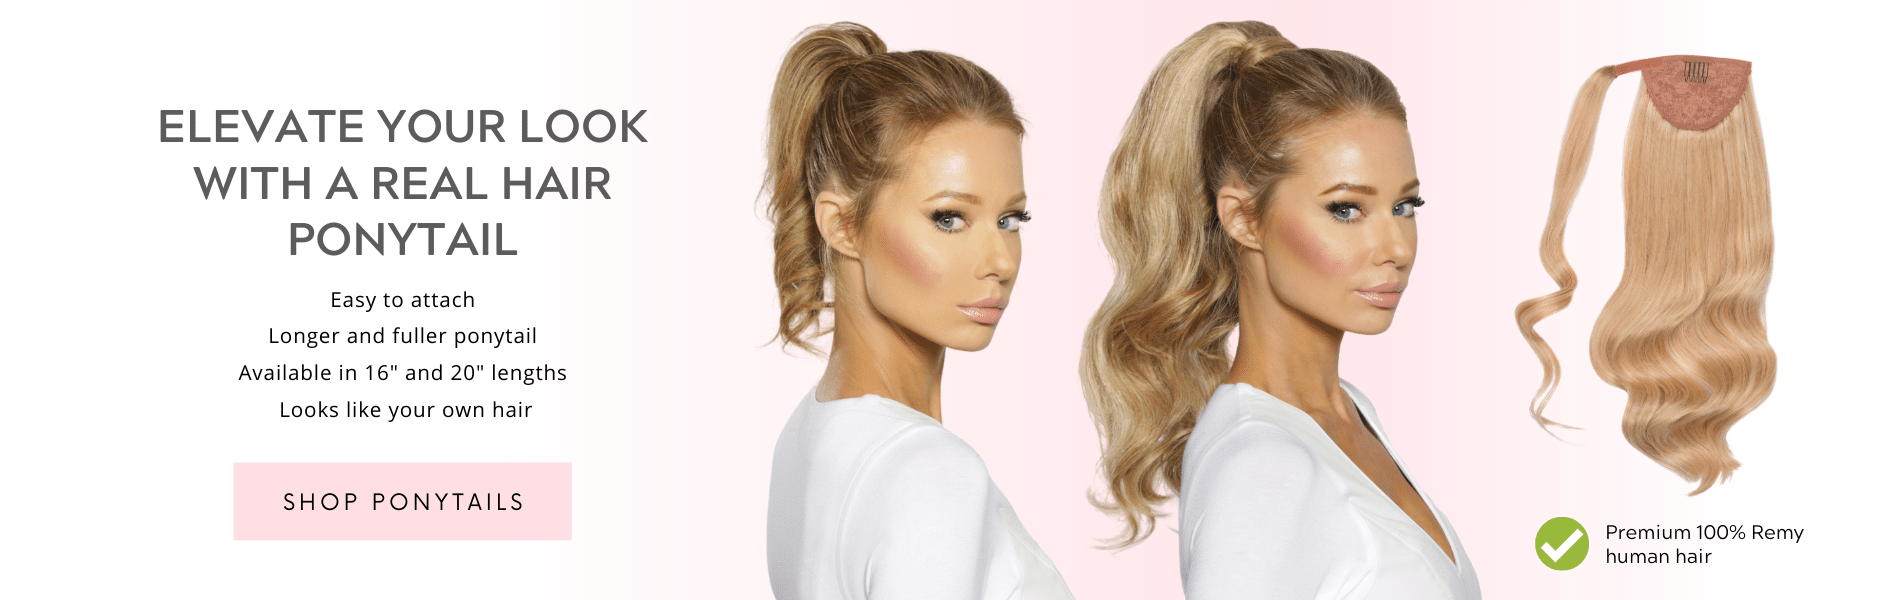 Elevate you look with a real hair ponytail. Shop Cashmere Hair ponytails!